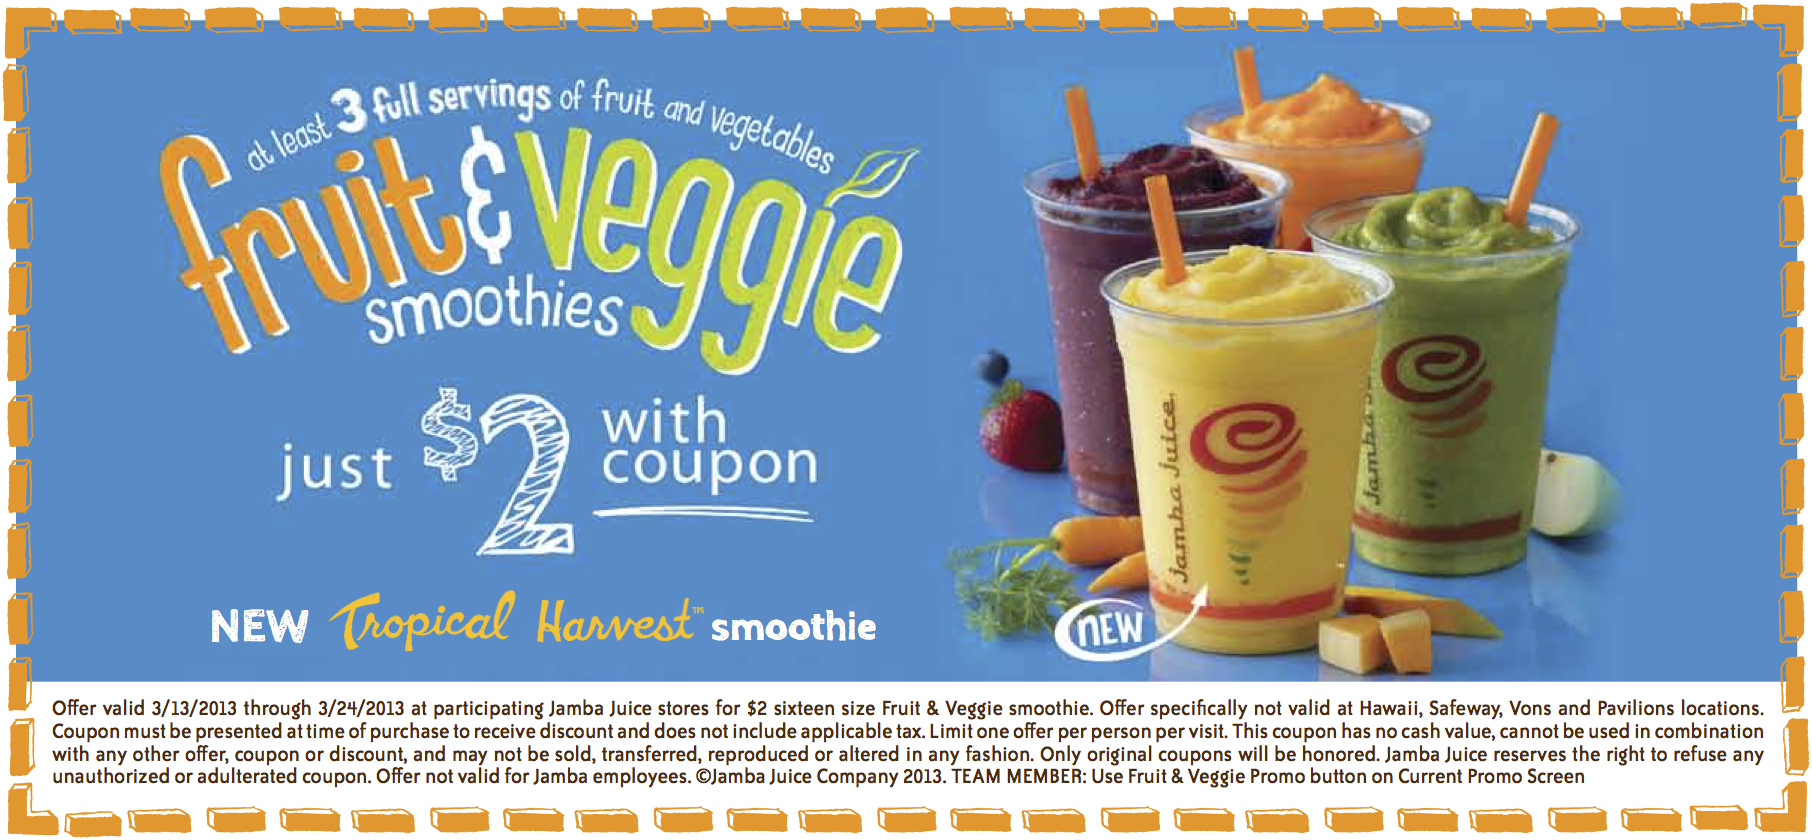 photograph regarding Tropical Smoothie Coupons Printable identified as Jamba Juice: $2 Fruit Veggie Smoothies Coupon - Thrifty